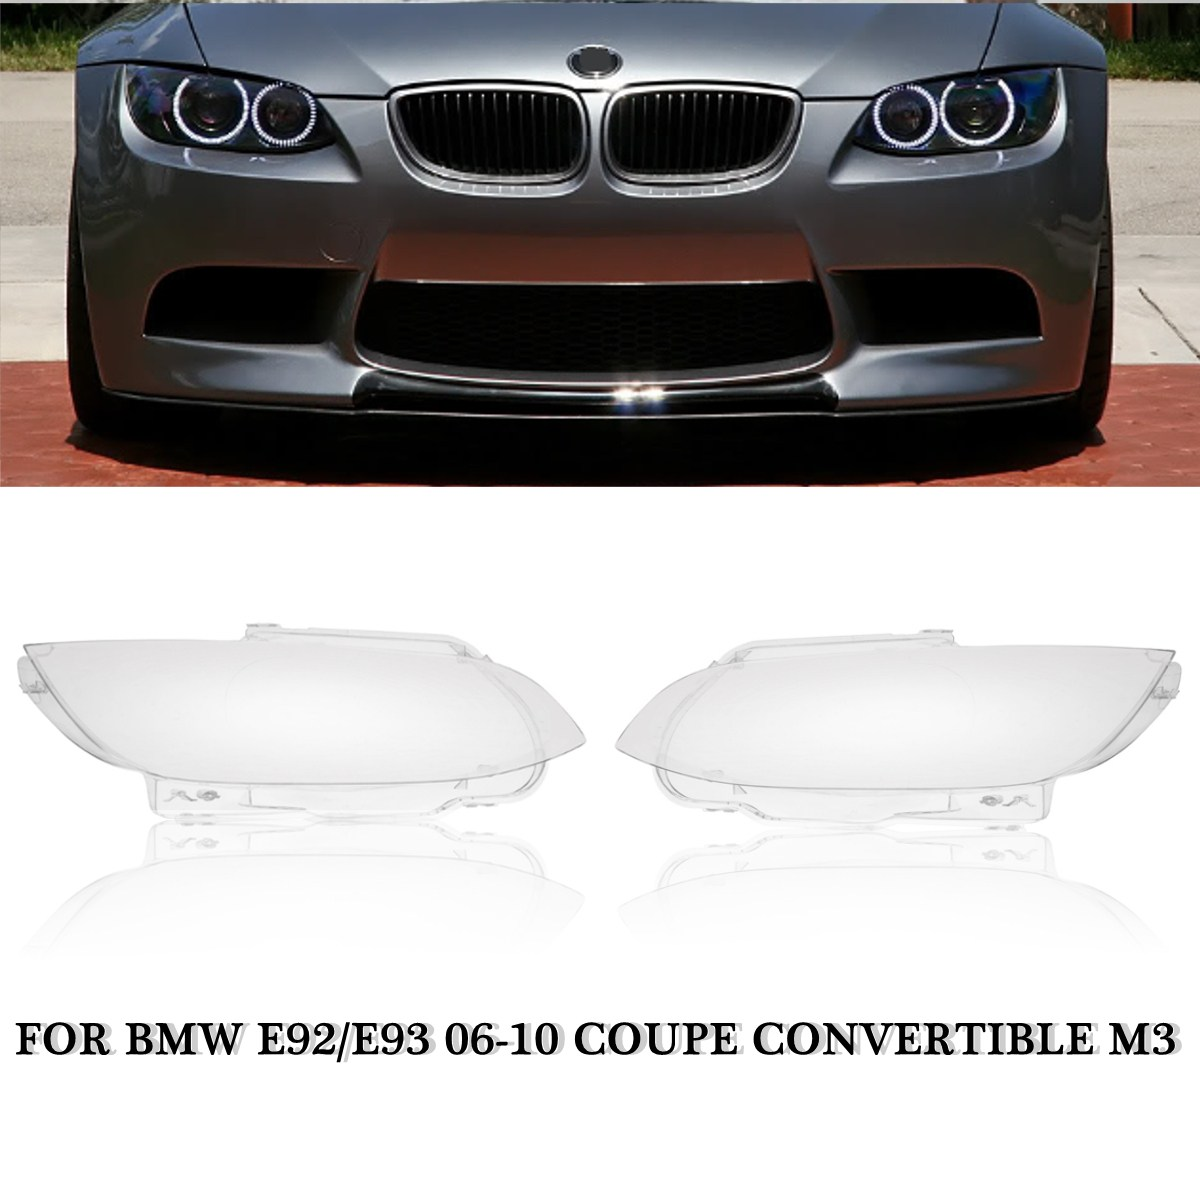 1PC Left/Right Car Headlight Cover Headlamp Lens Cover Fit For BMW E92 E93 Coupe M3 328i 335i Cabrio 2006 2007 2008 2009 20101PC Left/Right Car Headlight Cover Headlamp Lens Cover Fit For BMW E92 E93 Coupe M3 328i 335i Cabrio 2006 2007 2008 2009 2010